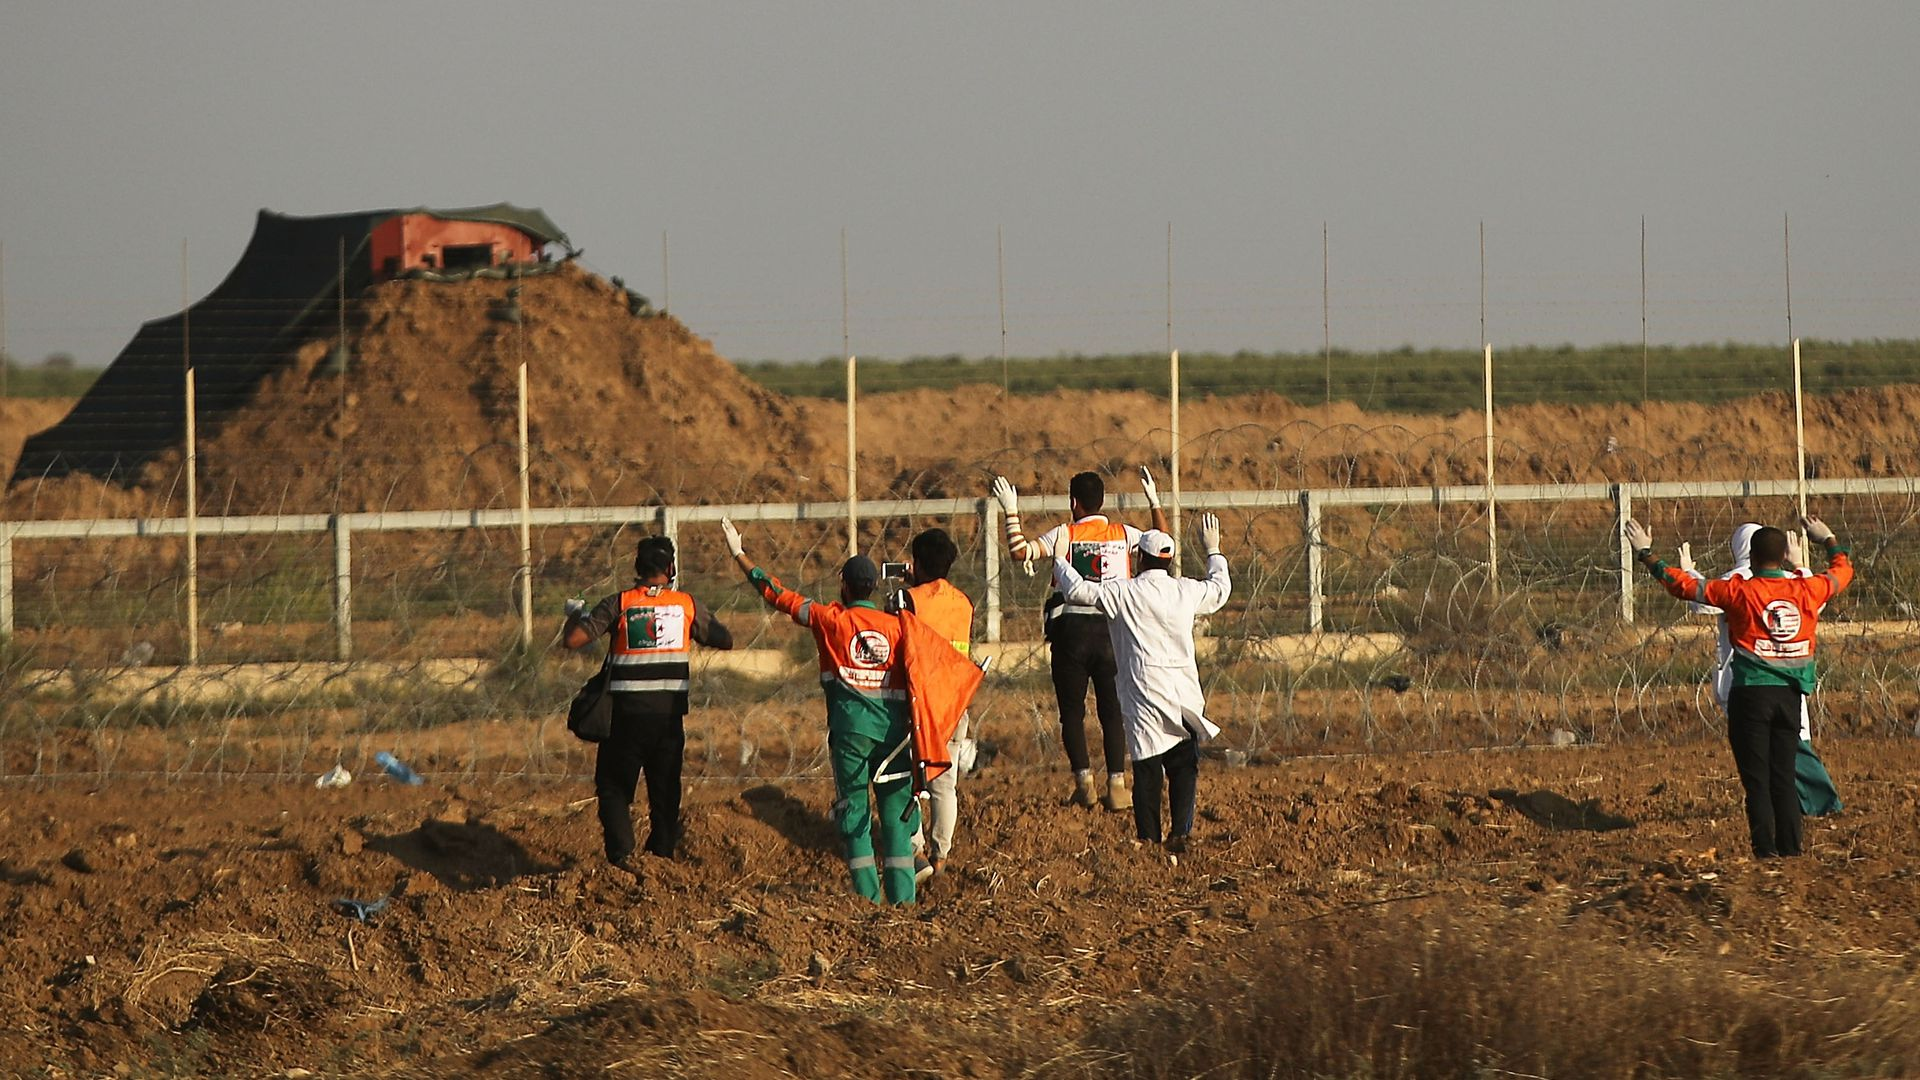 medical workers approach Israeli-Gaza border fence with arms up